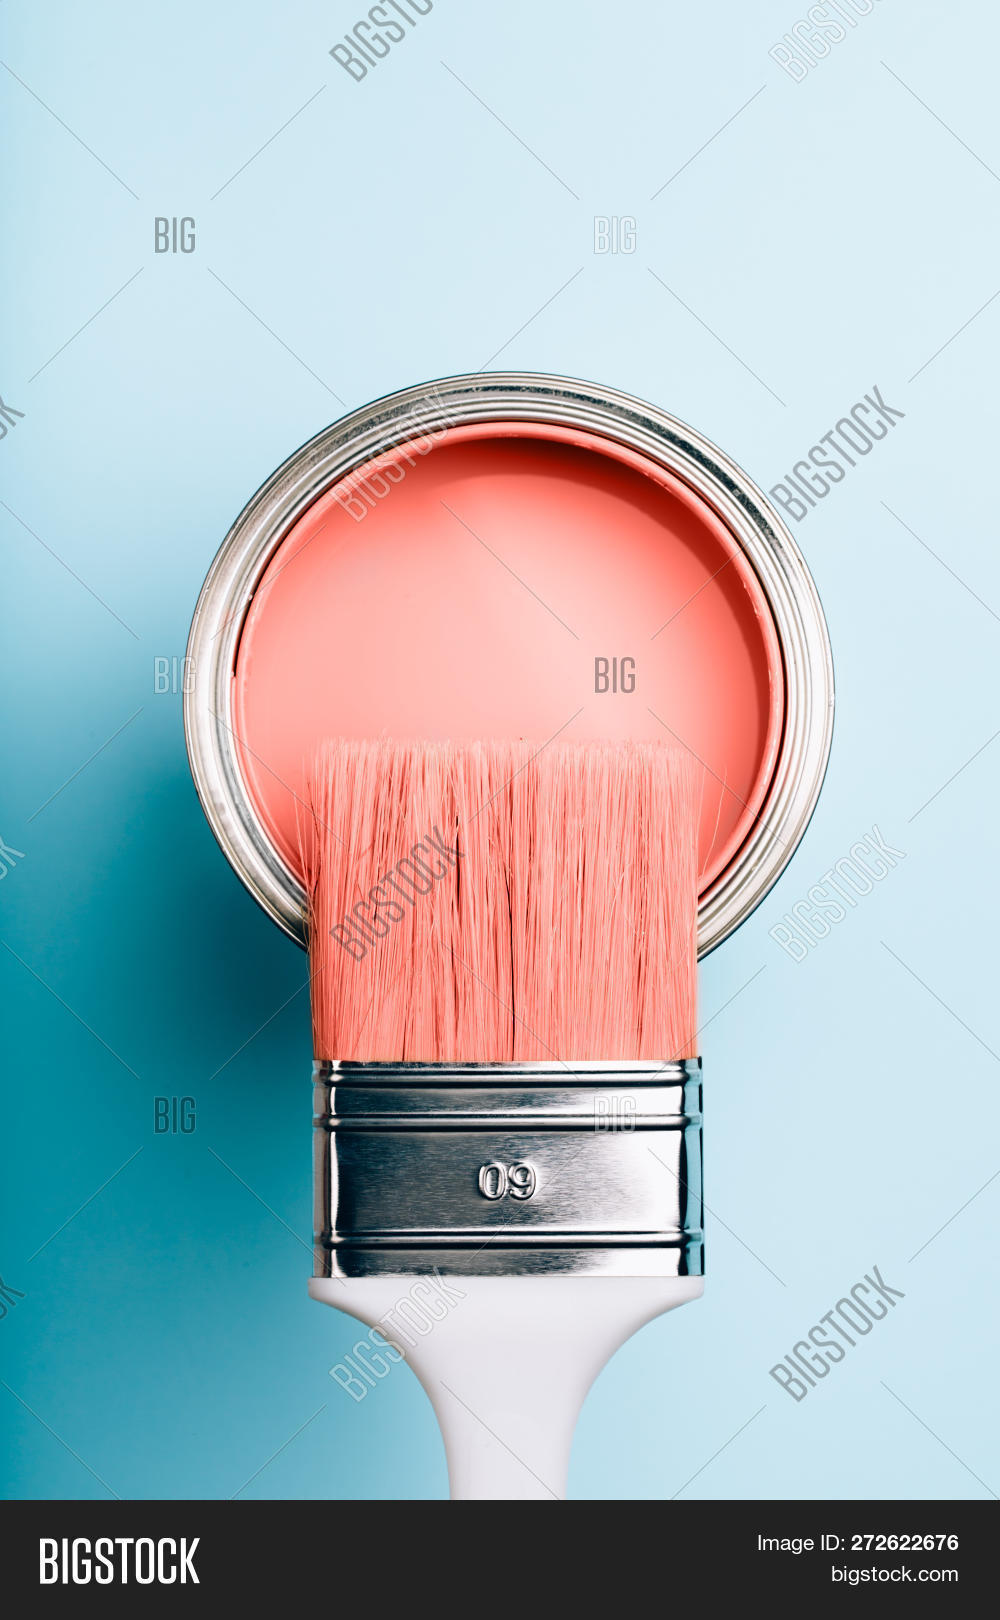 2019,Background,Color,Optimism,Palette,above,authentic,beautiful,black,blue,bright,brush,can,closeup,colorful,concept,copyspace,coral,coy2019,daily,design,flatlay,handle,home,house,hype,interior,life,lifestyle,live,macro,main,mood,open,orange,paint,pink,renovation,repair,style,trend,varnish,vertical,vibrant,year